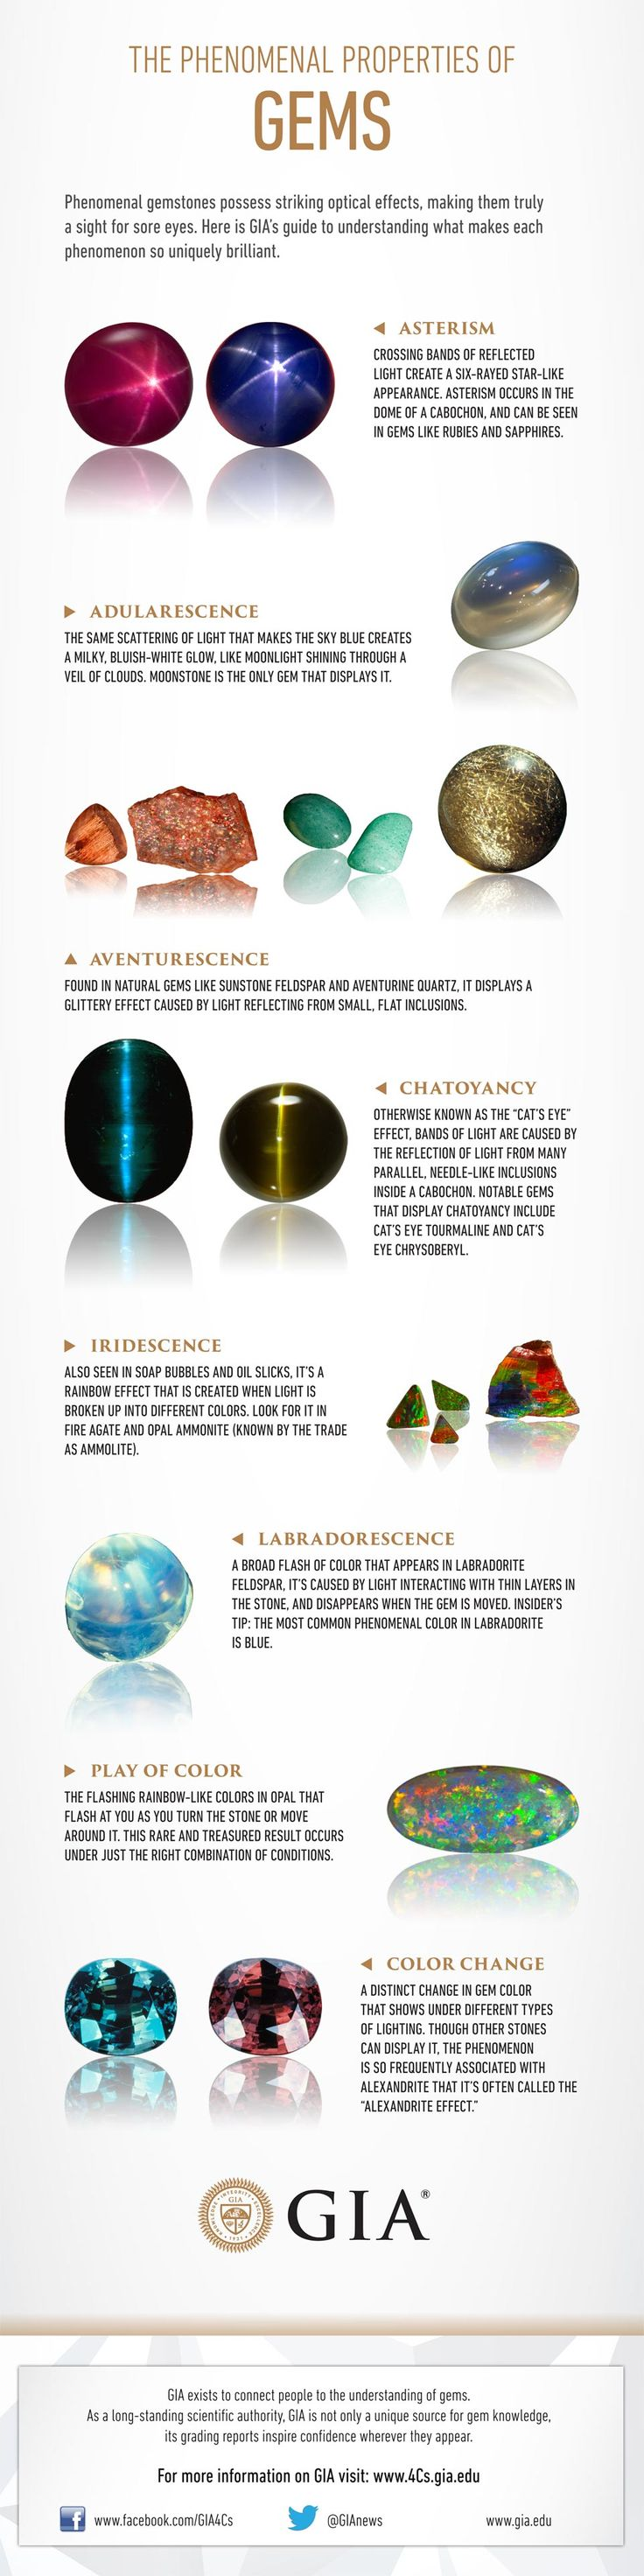 The Phenomenal Properties of Gems. GIA (081114)